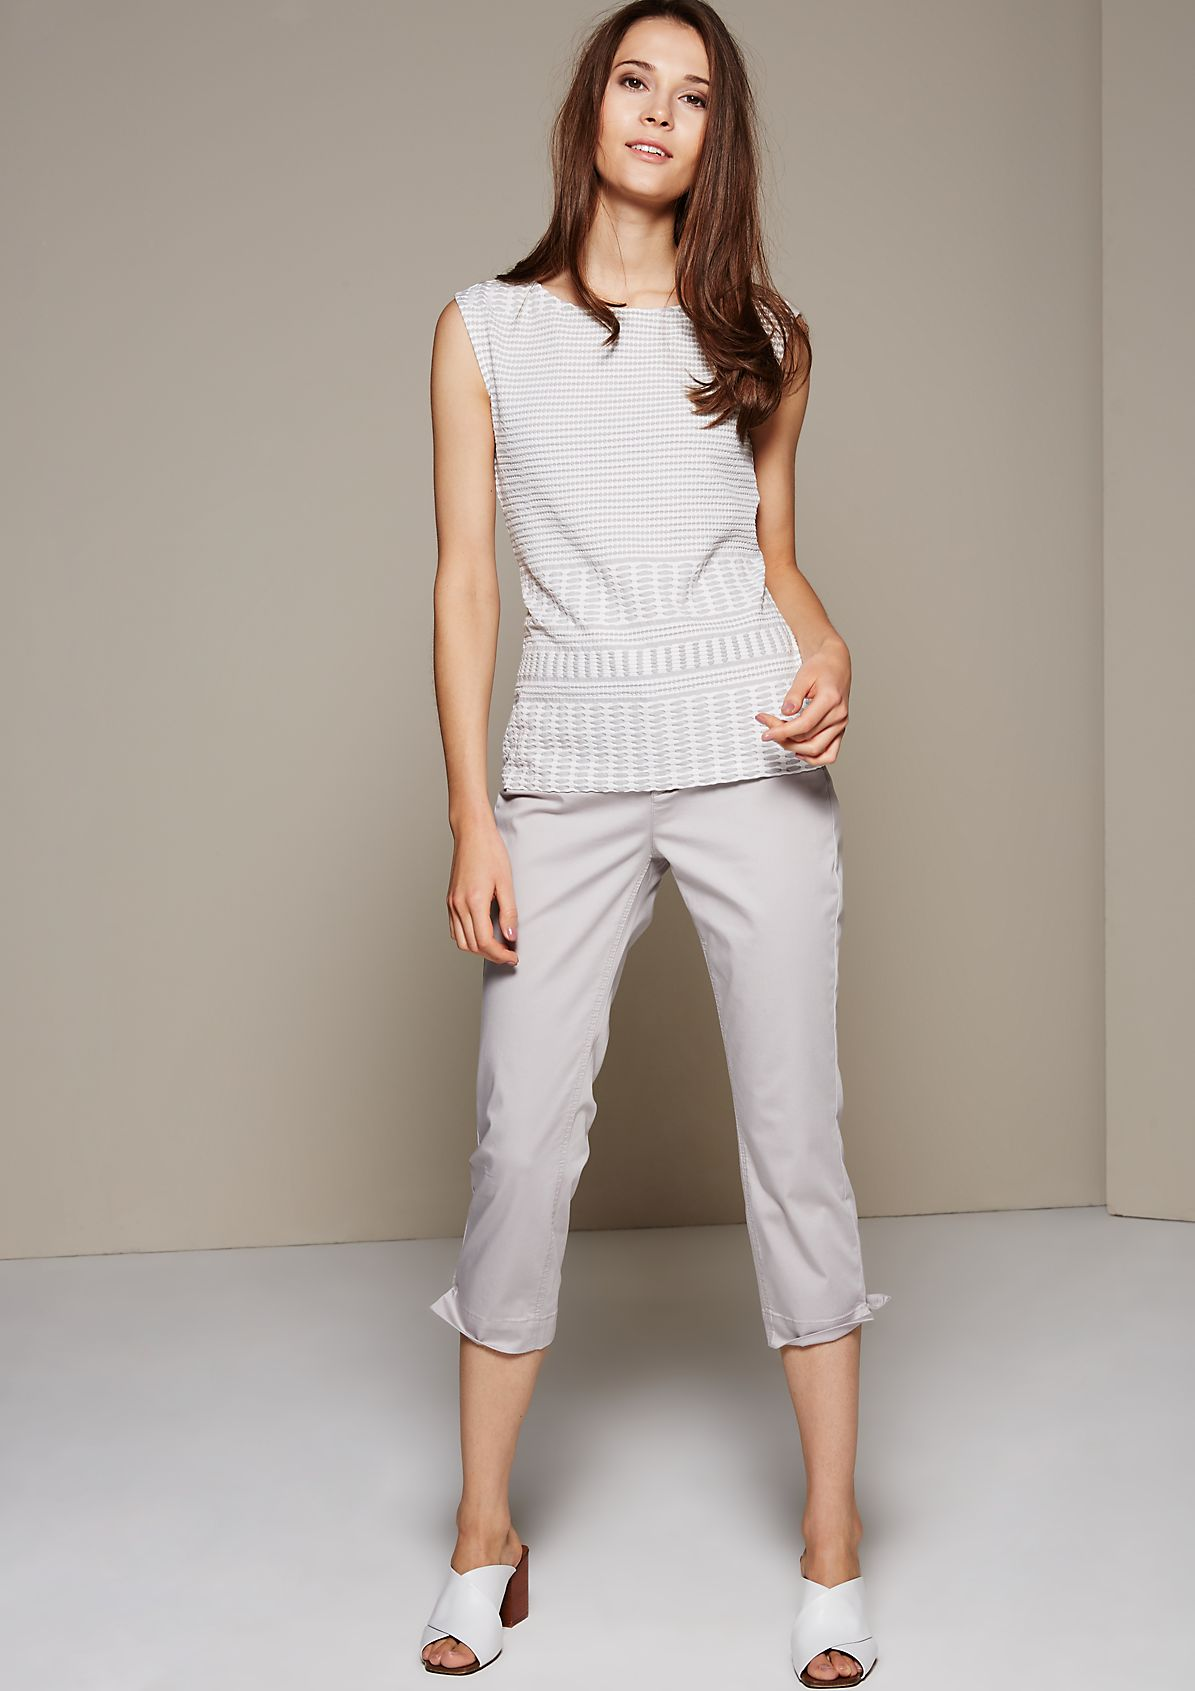 Summer top with a sophisticated textured pattern from s.Oliver